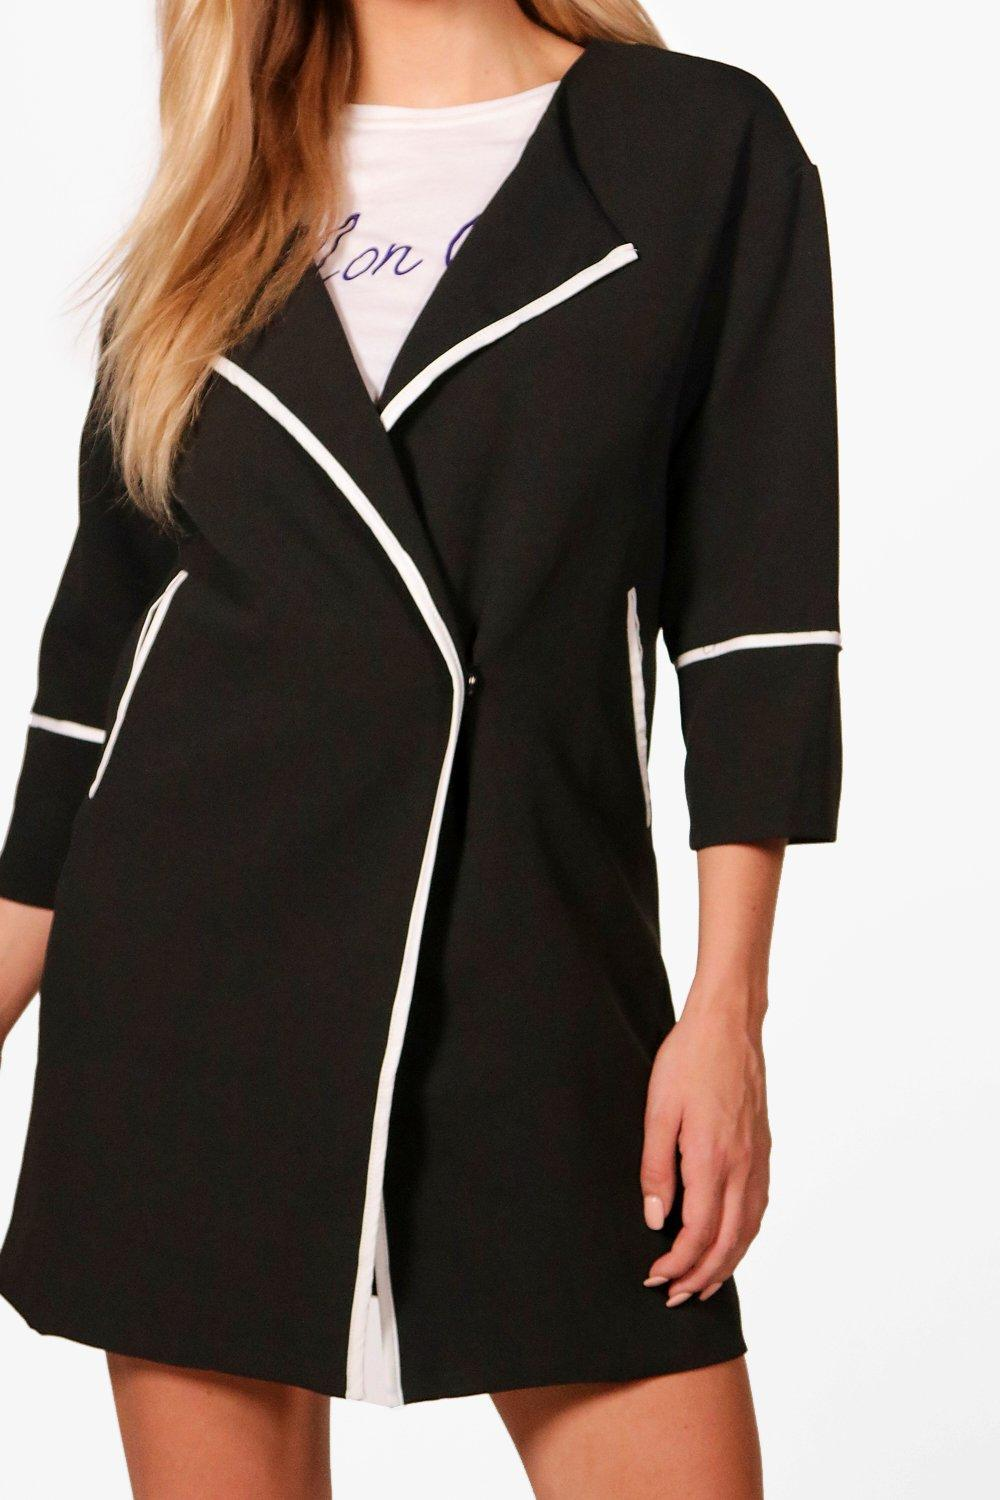 NEW-Boohoo-Womens-Summer-Collarless-Coat-in-Polyester